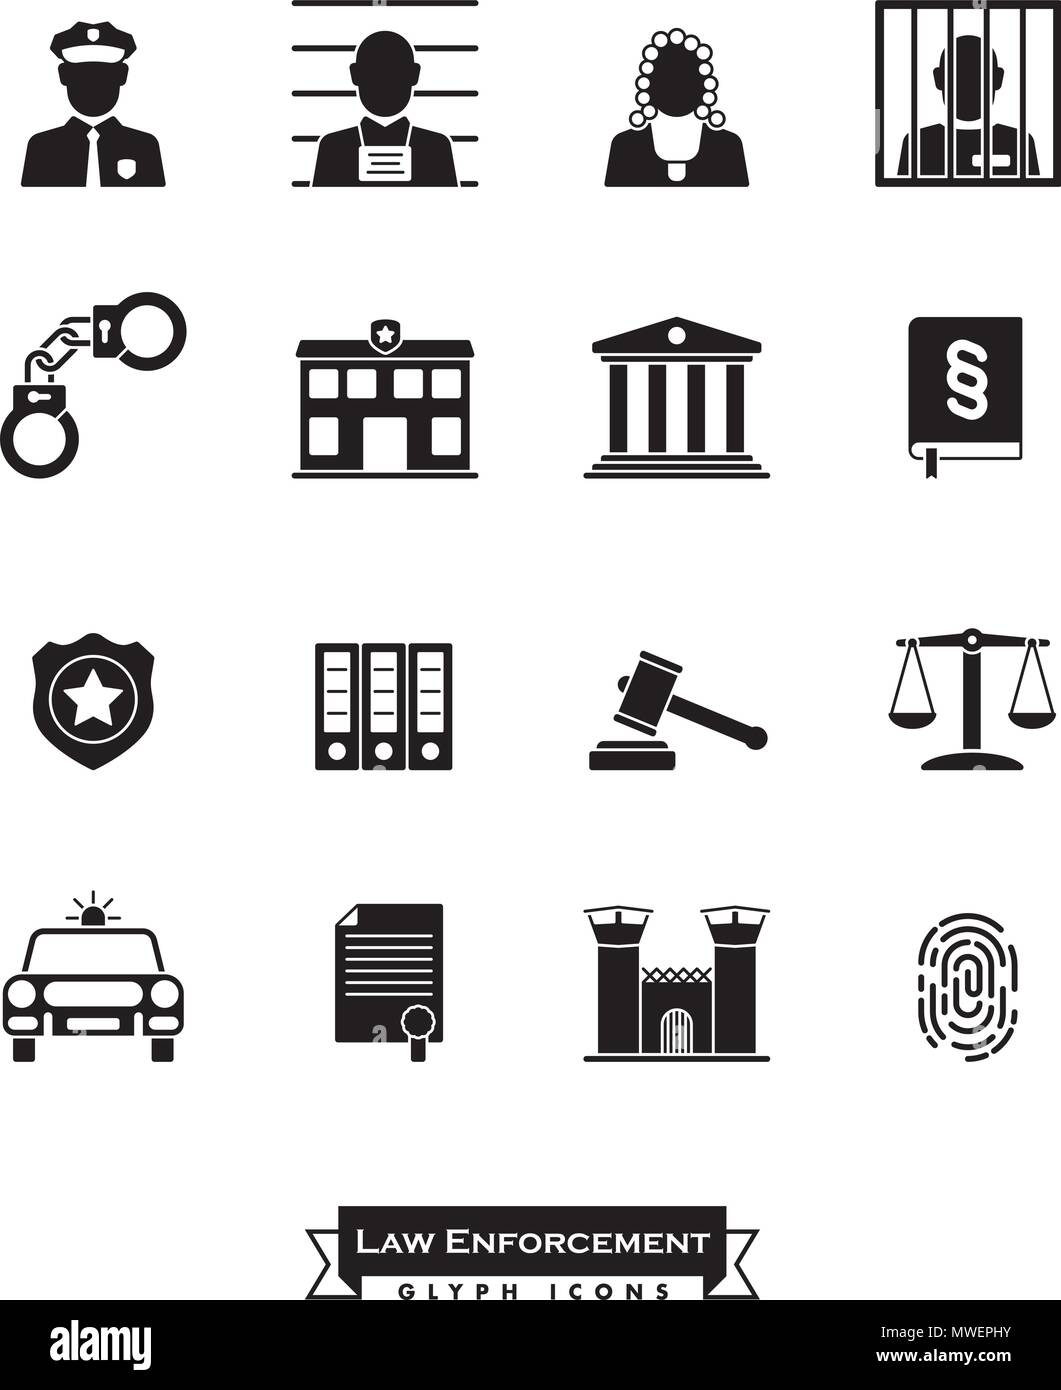 Collection Of Law Enforcement Glyph Icons Criminal Justice Symbols